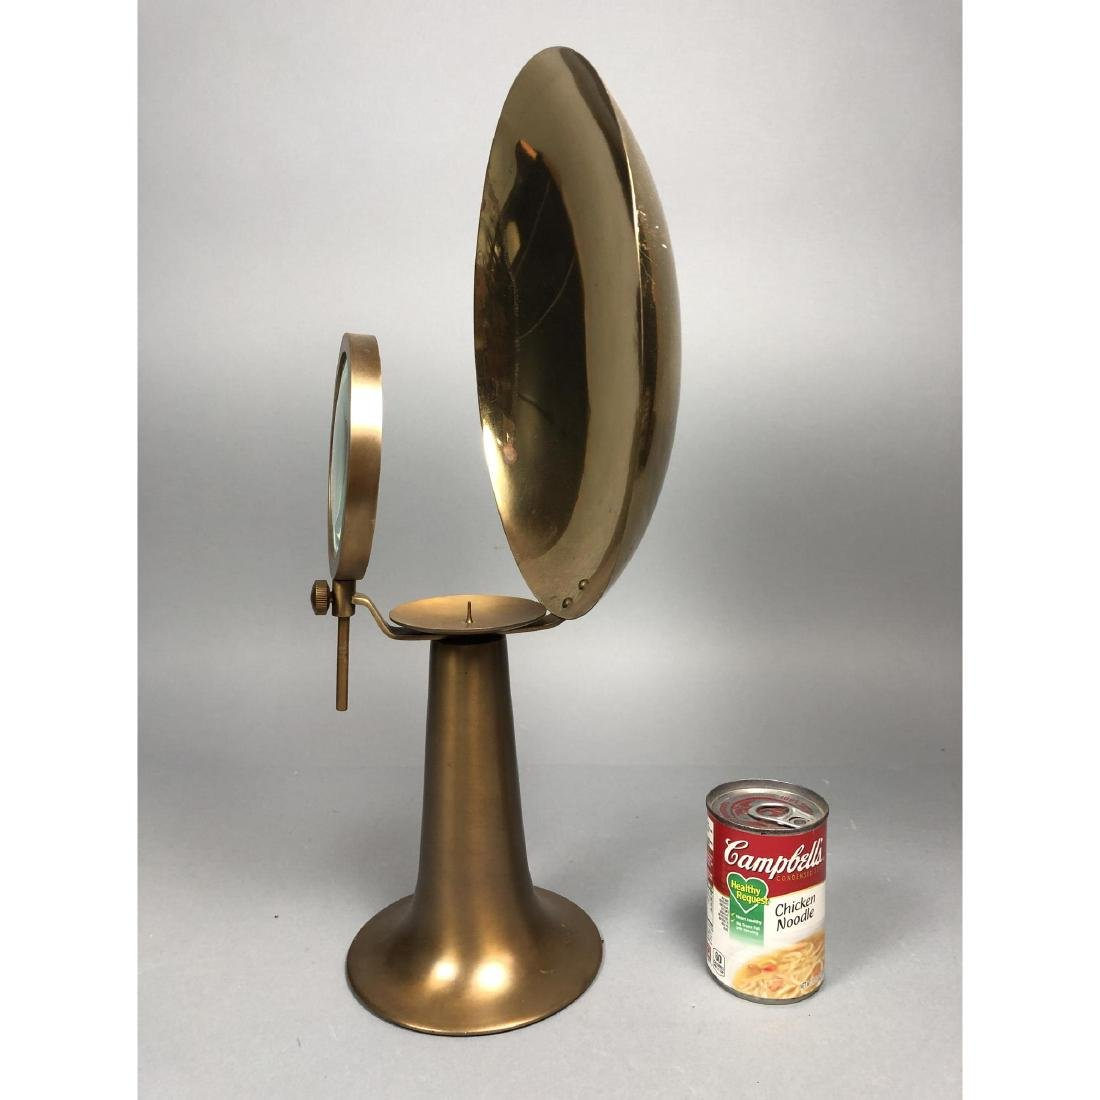 Stylish Modern Brass & Metal Industrial Candle St - 5